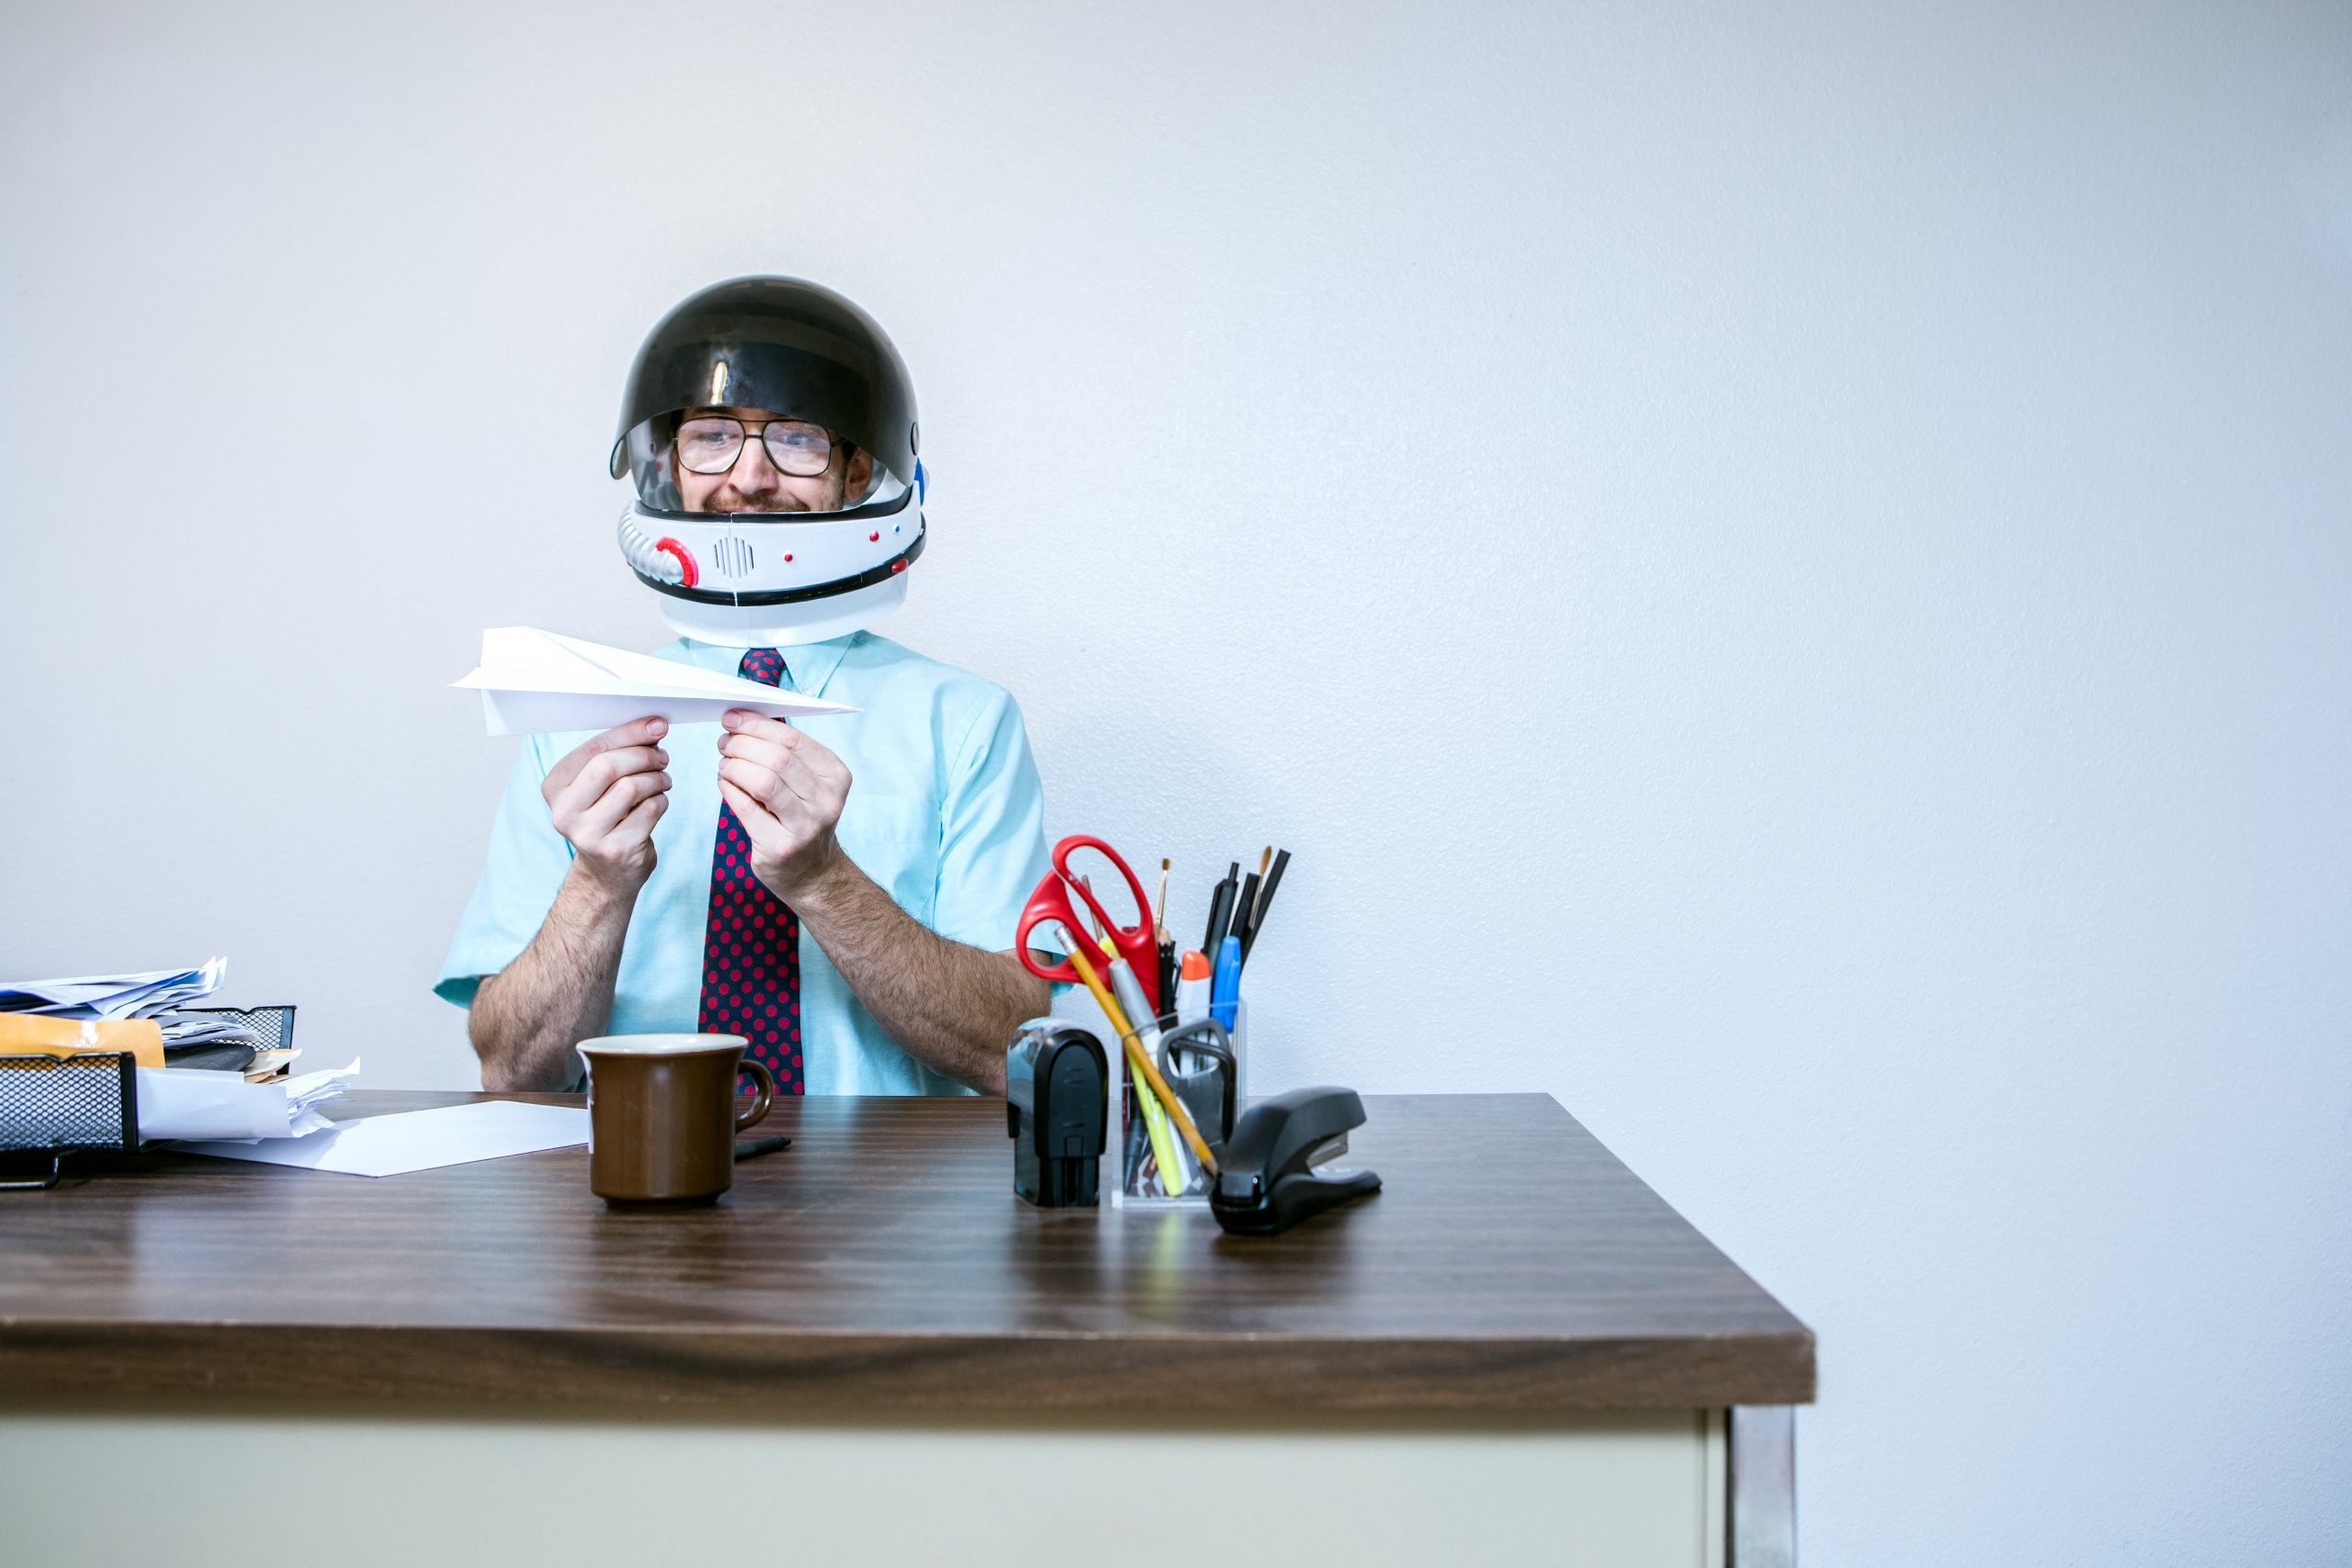 A business man working in the office imagines he is an astronaut, wearing a toy space suit helmet while sitting at his desk.